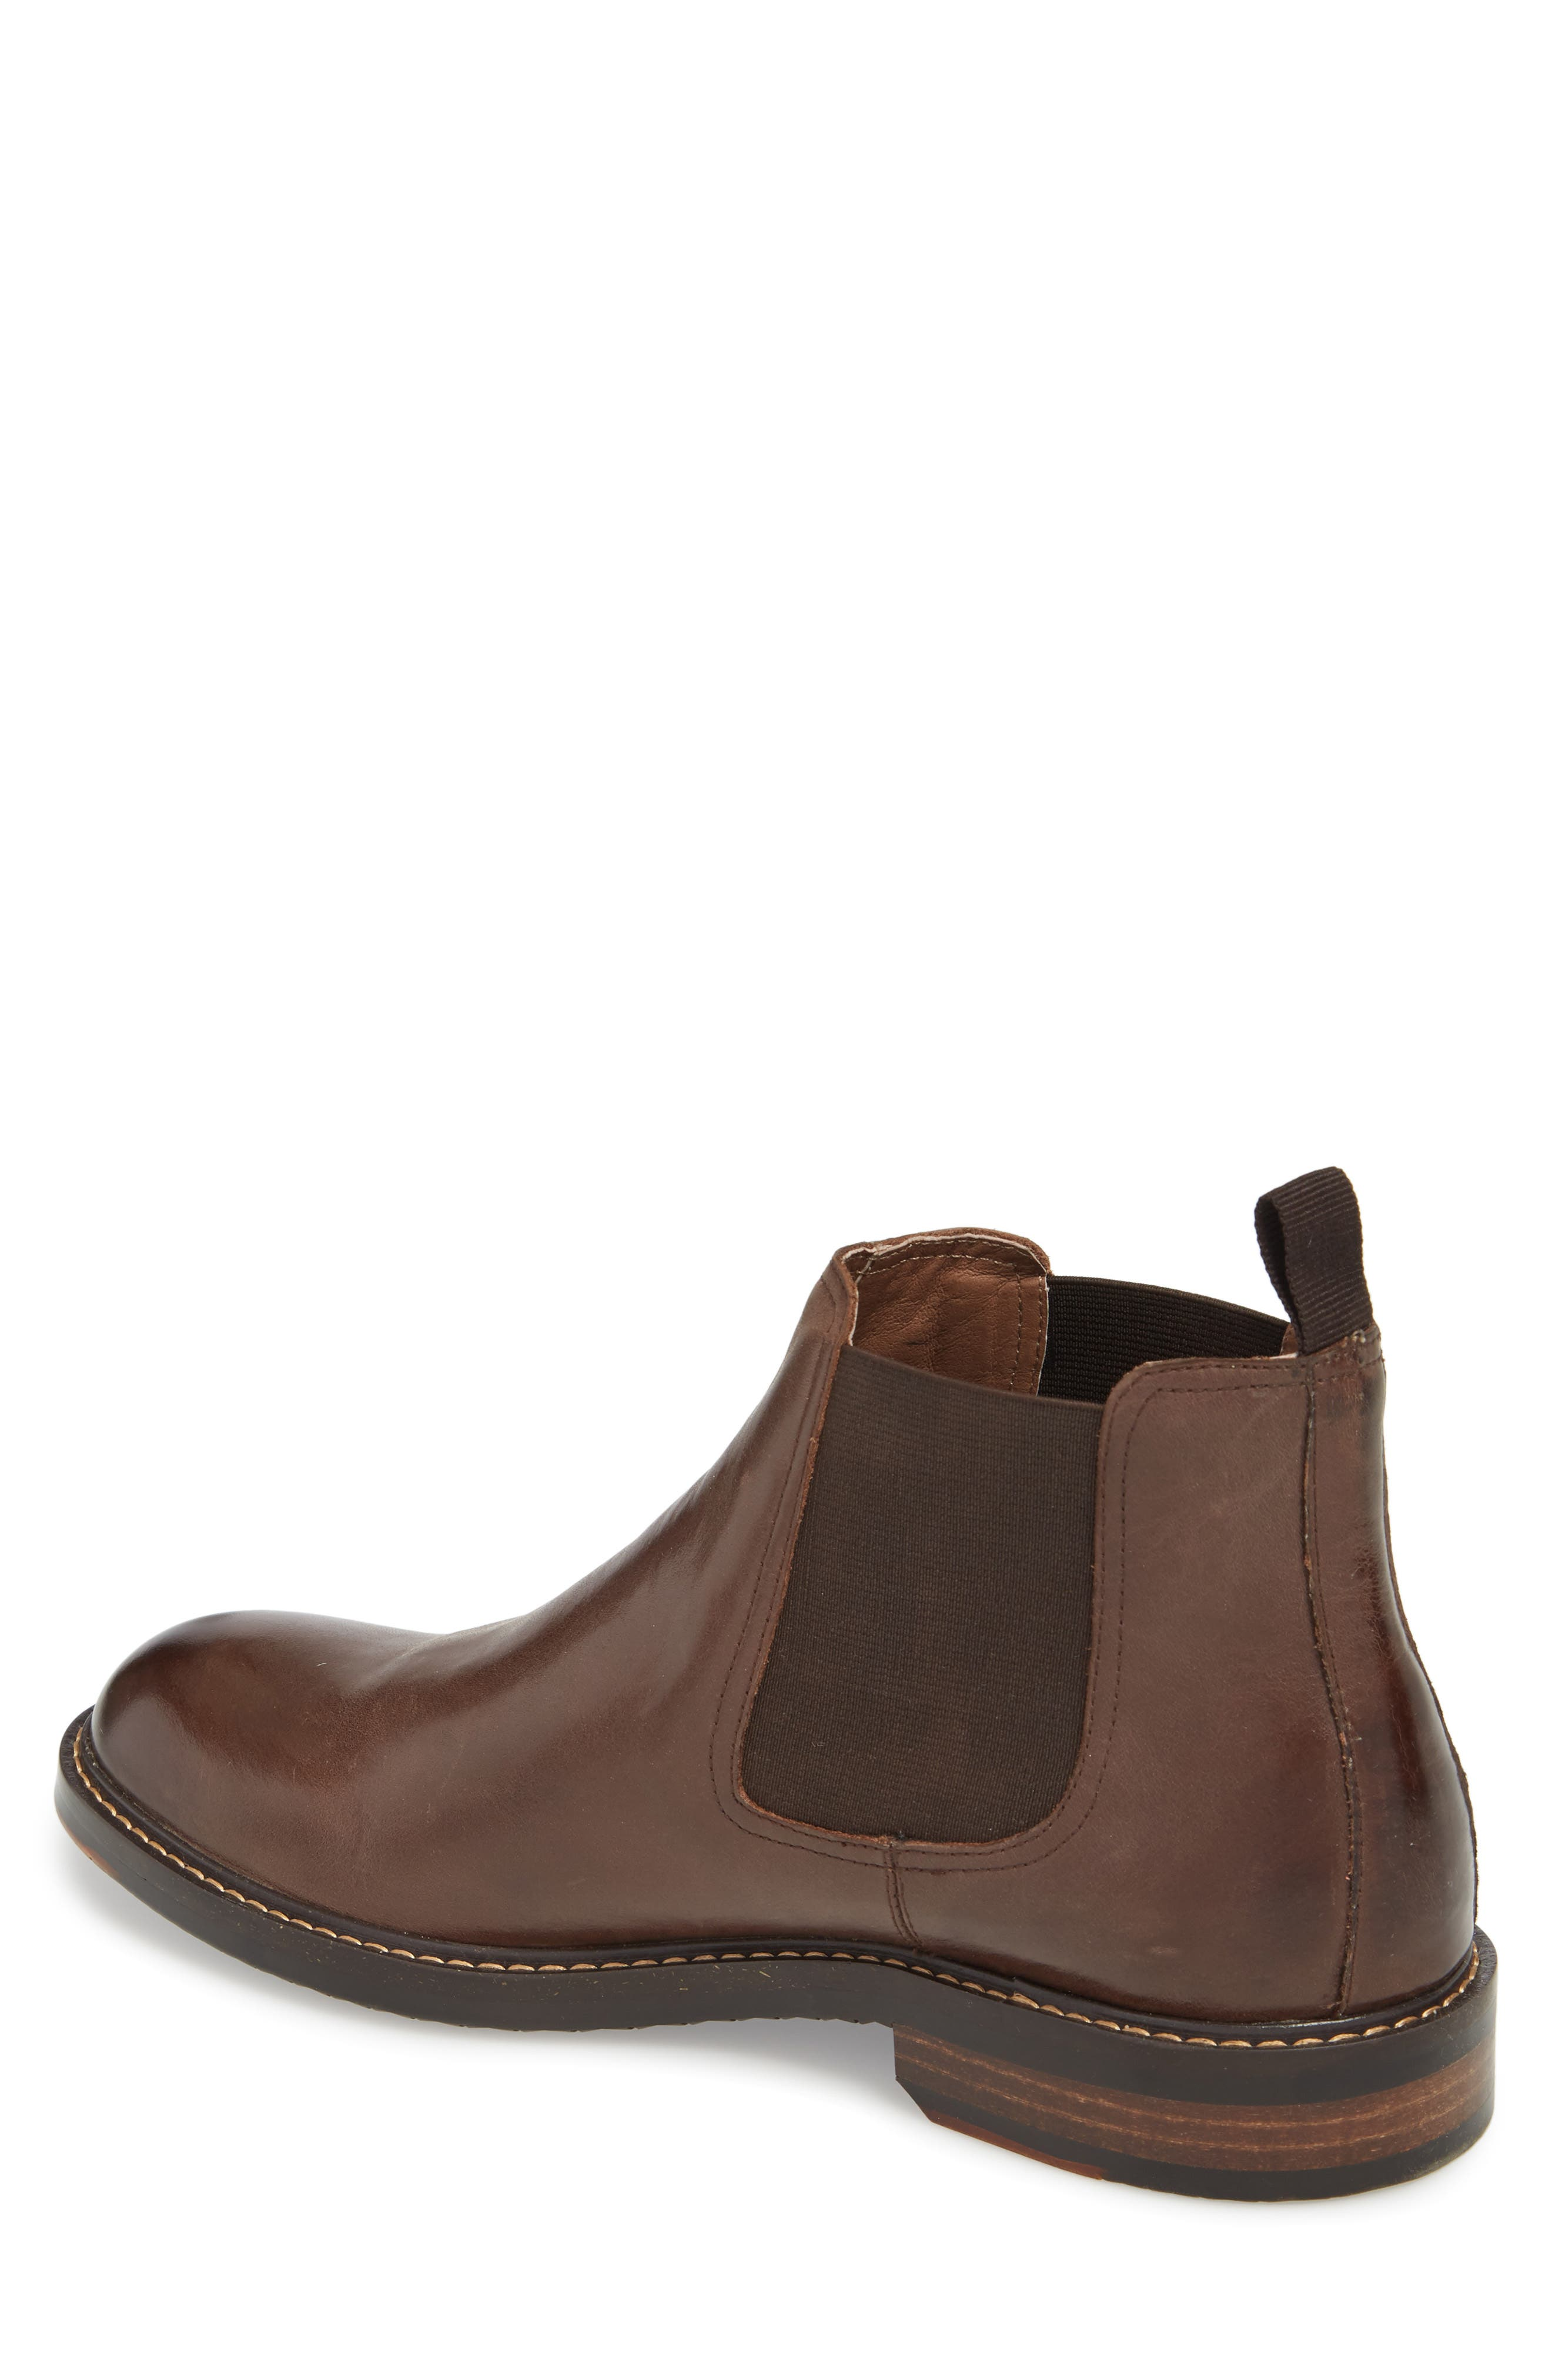 Brooks Chelsea Boot,                             Alternate thumbnail 2, color,                             BROWN LEATHER